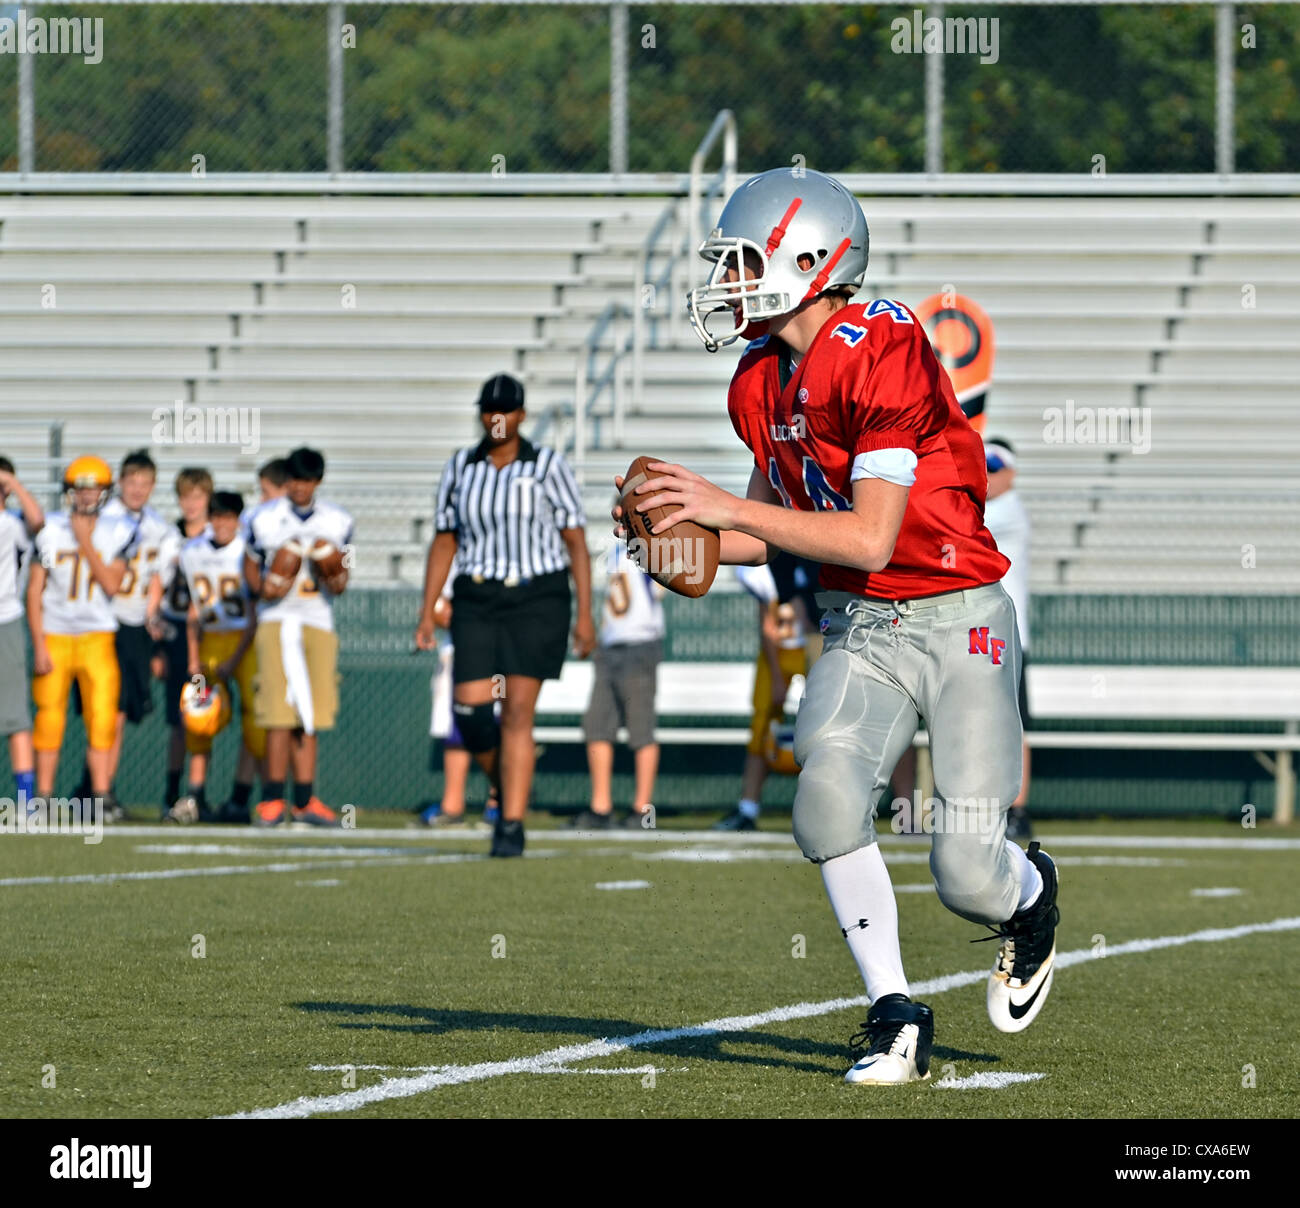 A quarterback looking for a receiver during a football game, a referee closely following the action. - Stock Image